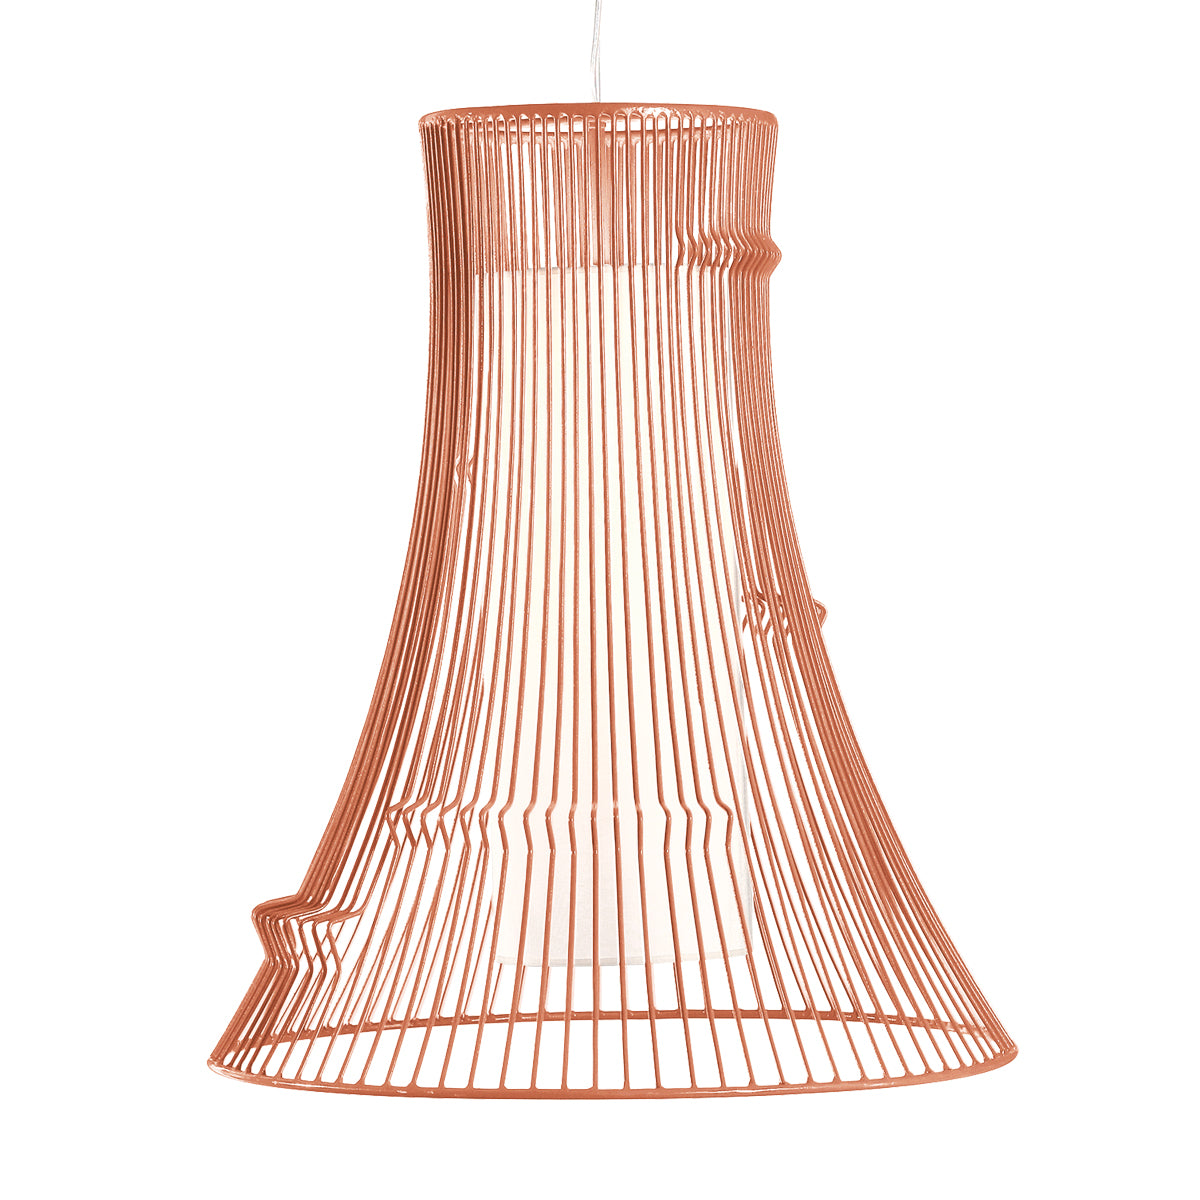 Extrude - Suspension Light by Utu Soulful Lighting | Do Shop